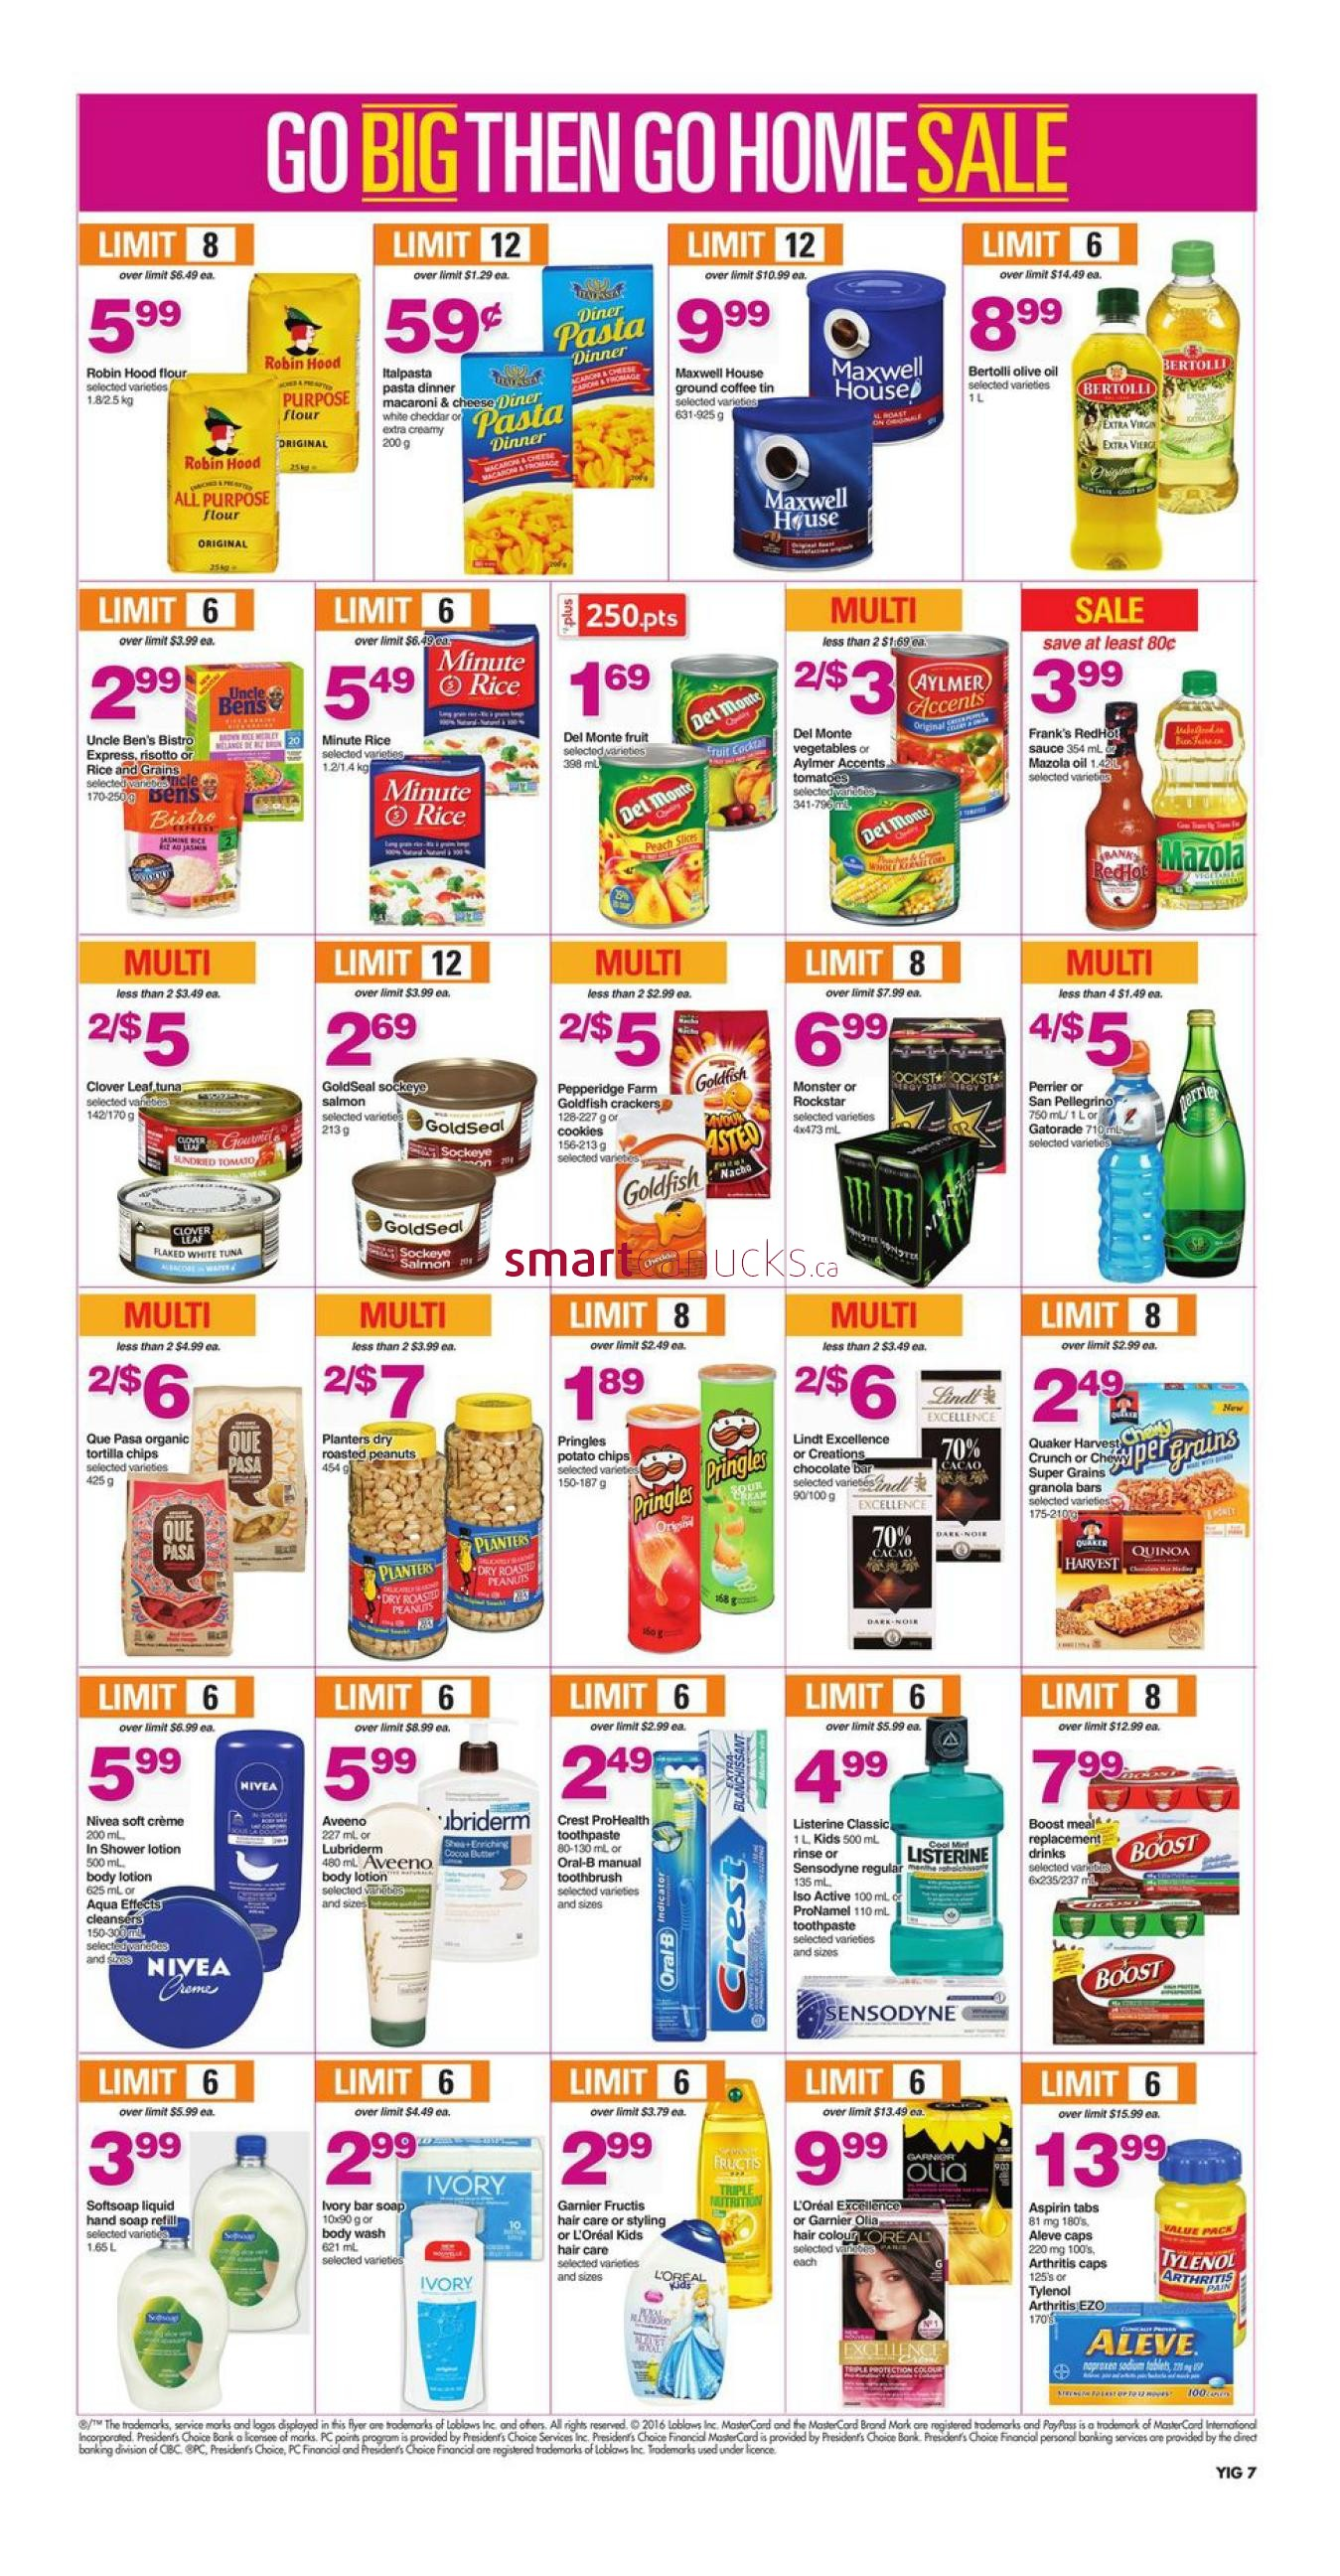 coupons ymca harley coupon june for app wepim codes promo uk cabins deals overstock cabin sports vubo store omega